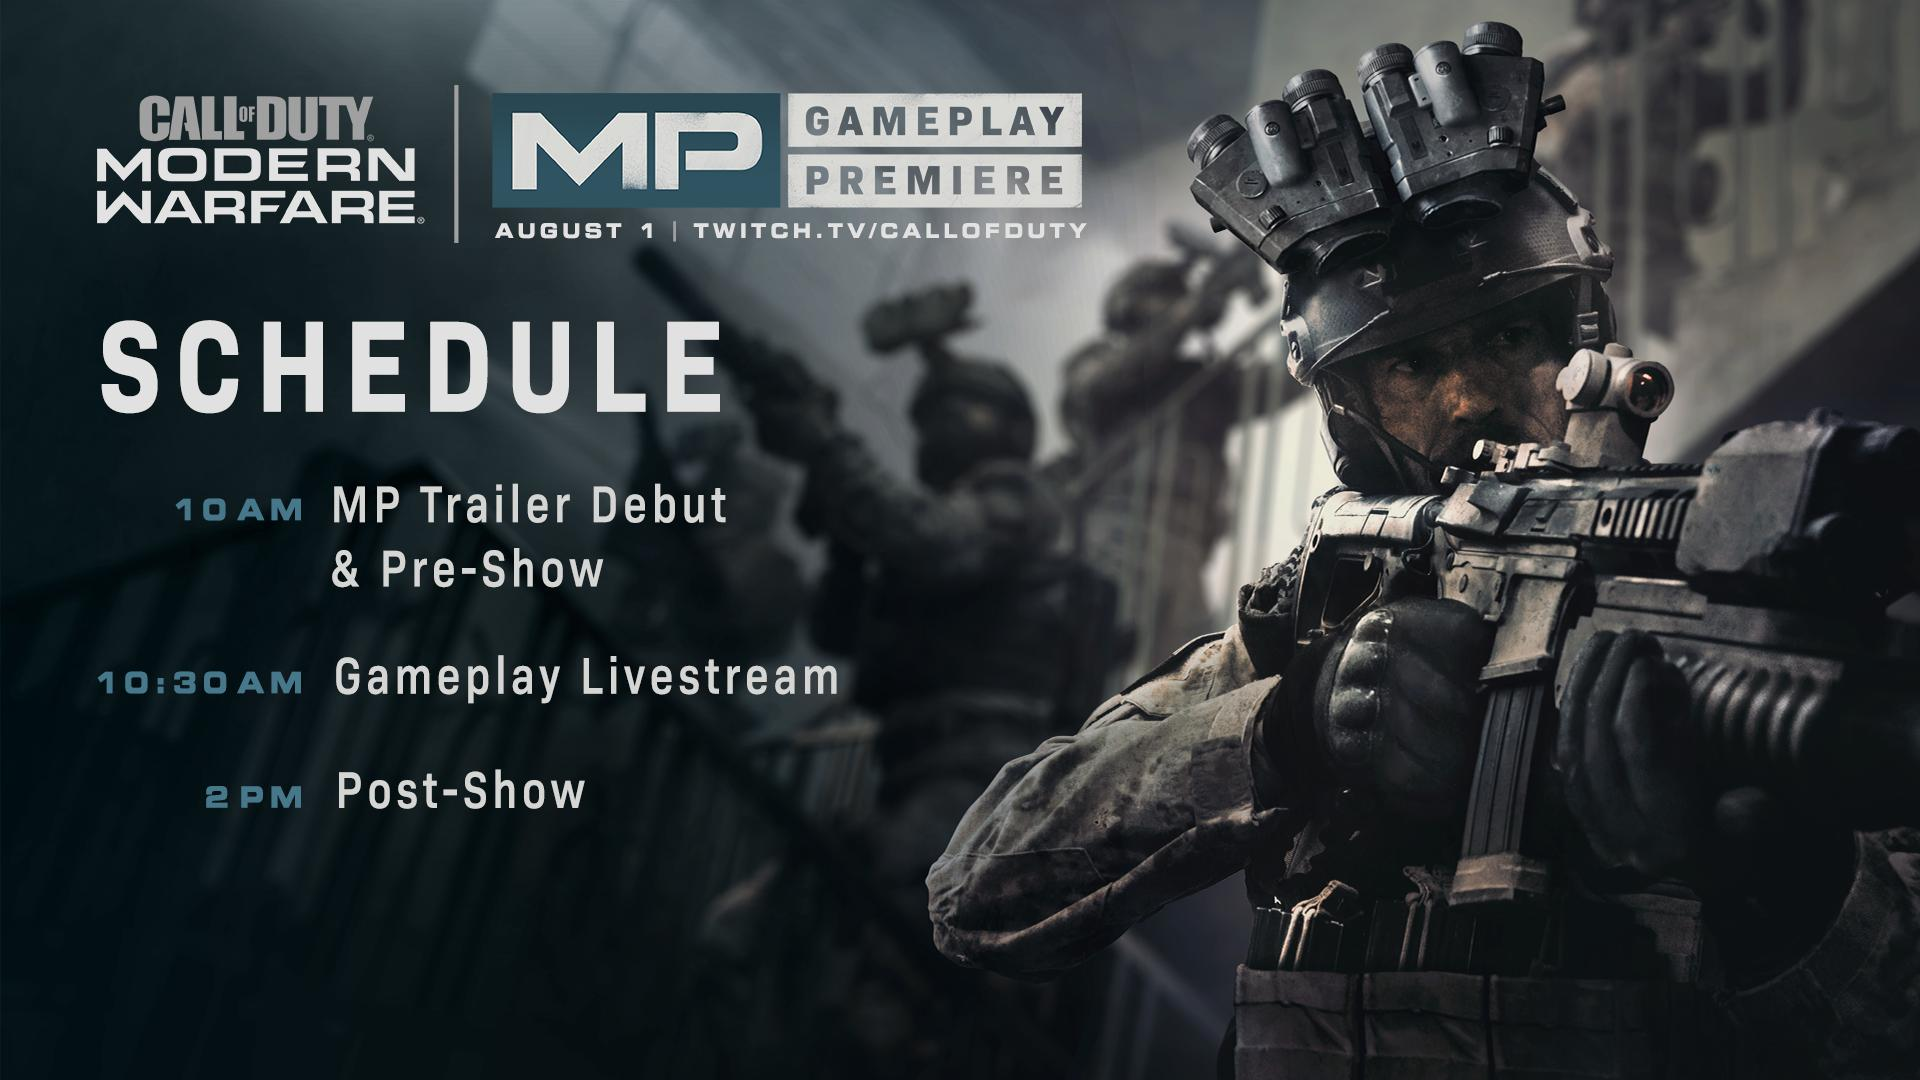 Call of Duty Modern Warfare Multiplayer Premiere